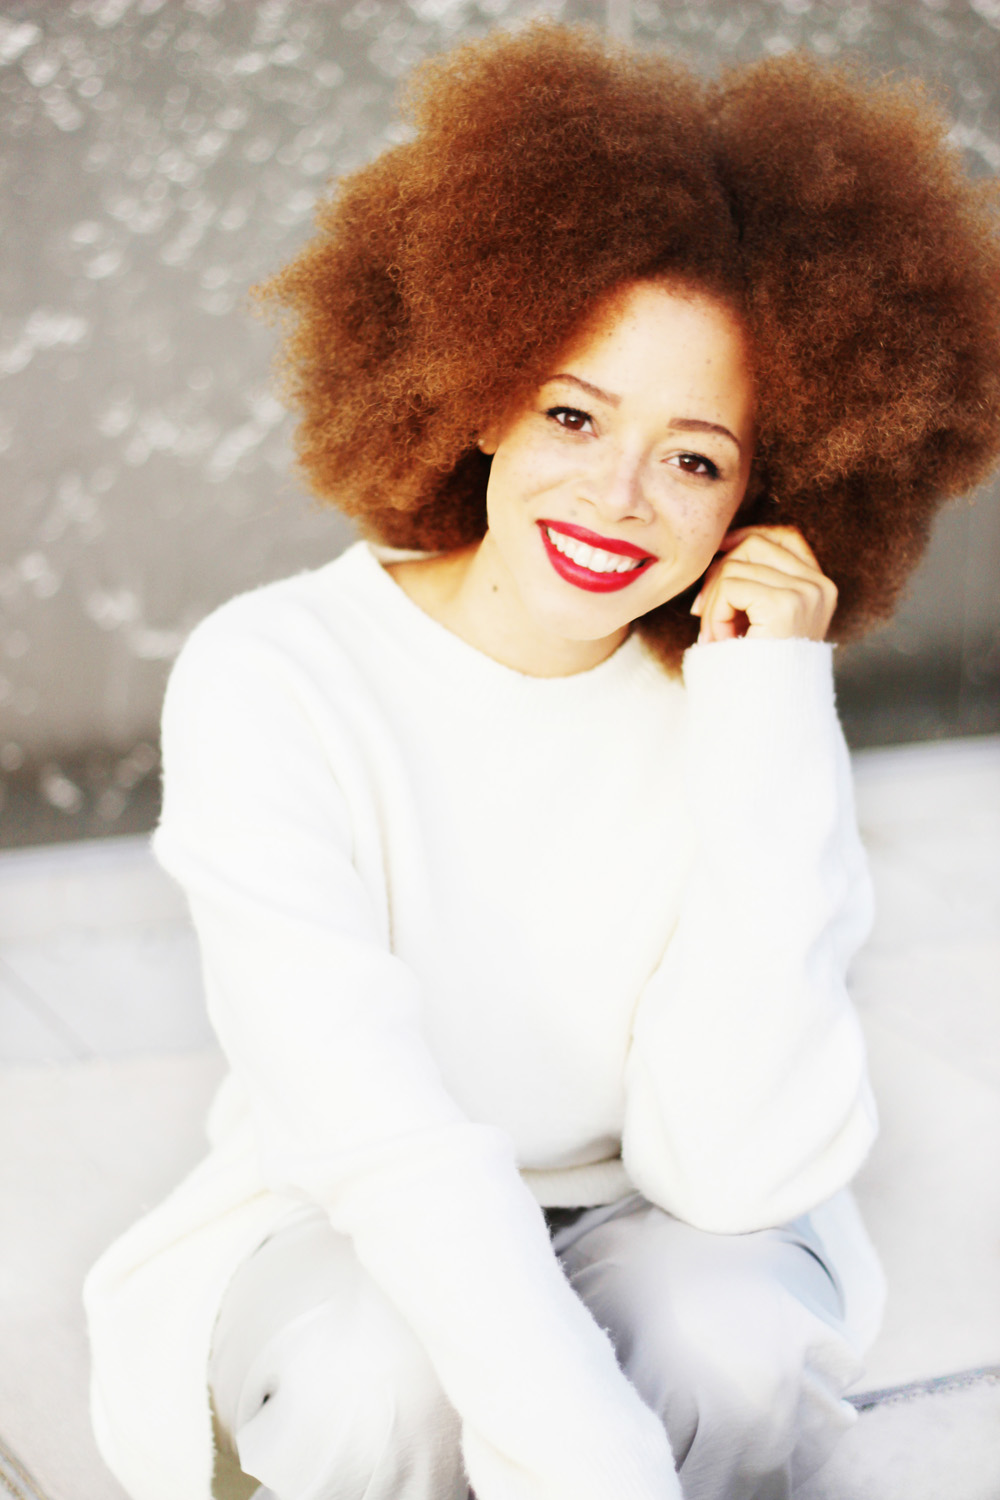 fatimayarie-afro-bighair-redhair-smile-mixedgirl-naturalcurls-whitesweater-img_3719